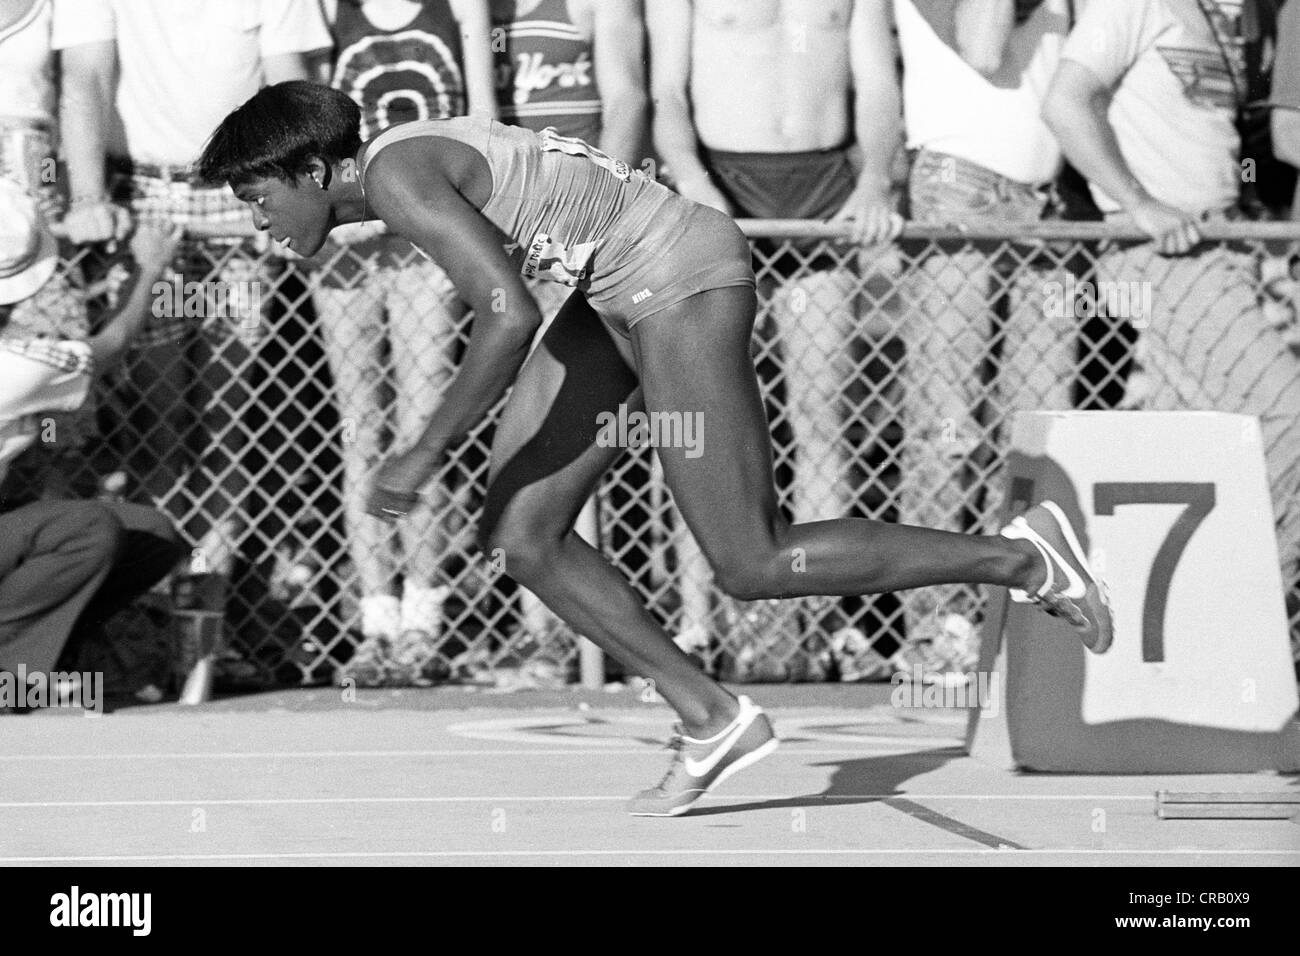 Chandra Cheeseborough competing at the 1980 US Olympic Track and Field Trials. - Stock Image